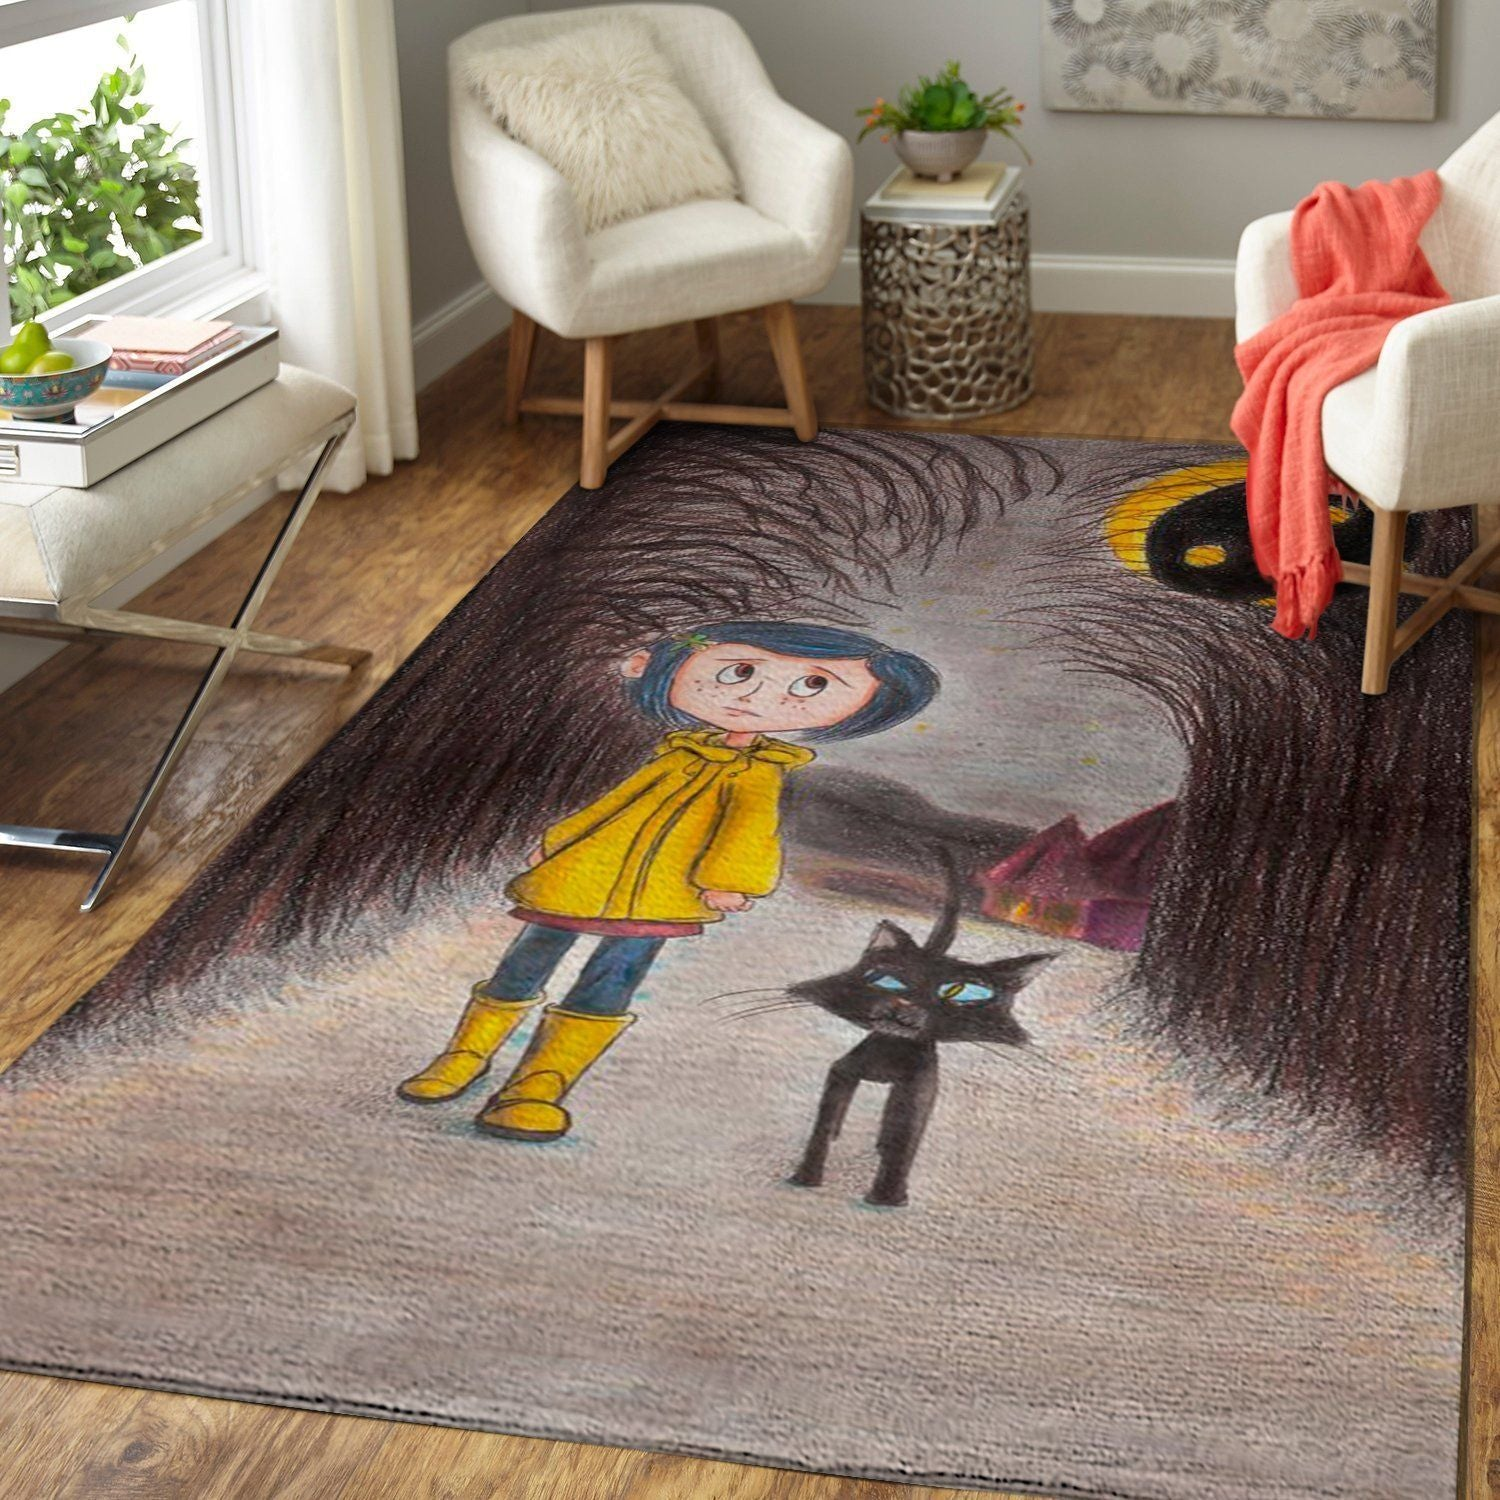 Coraline Area Rug / Movie Floor Decor 190909